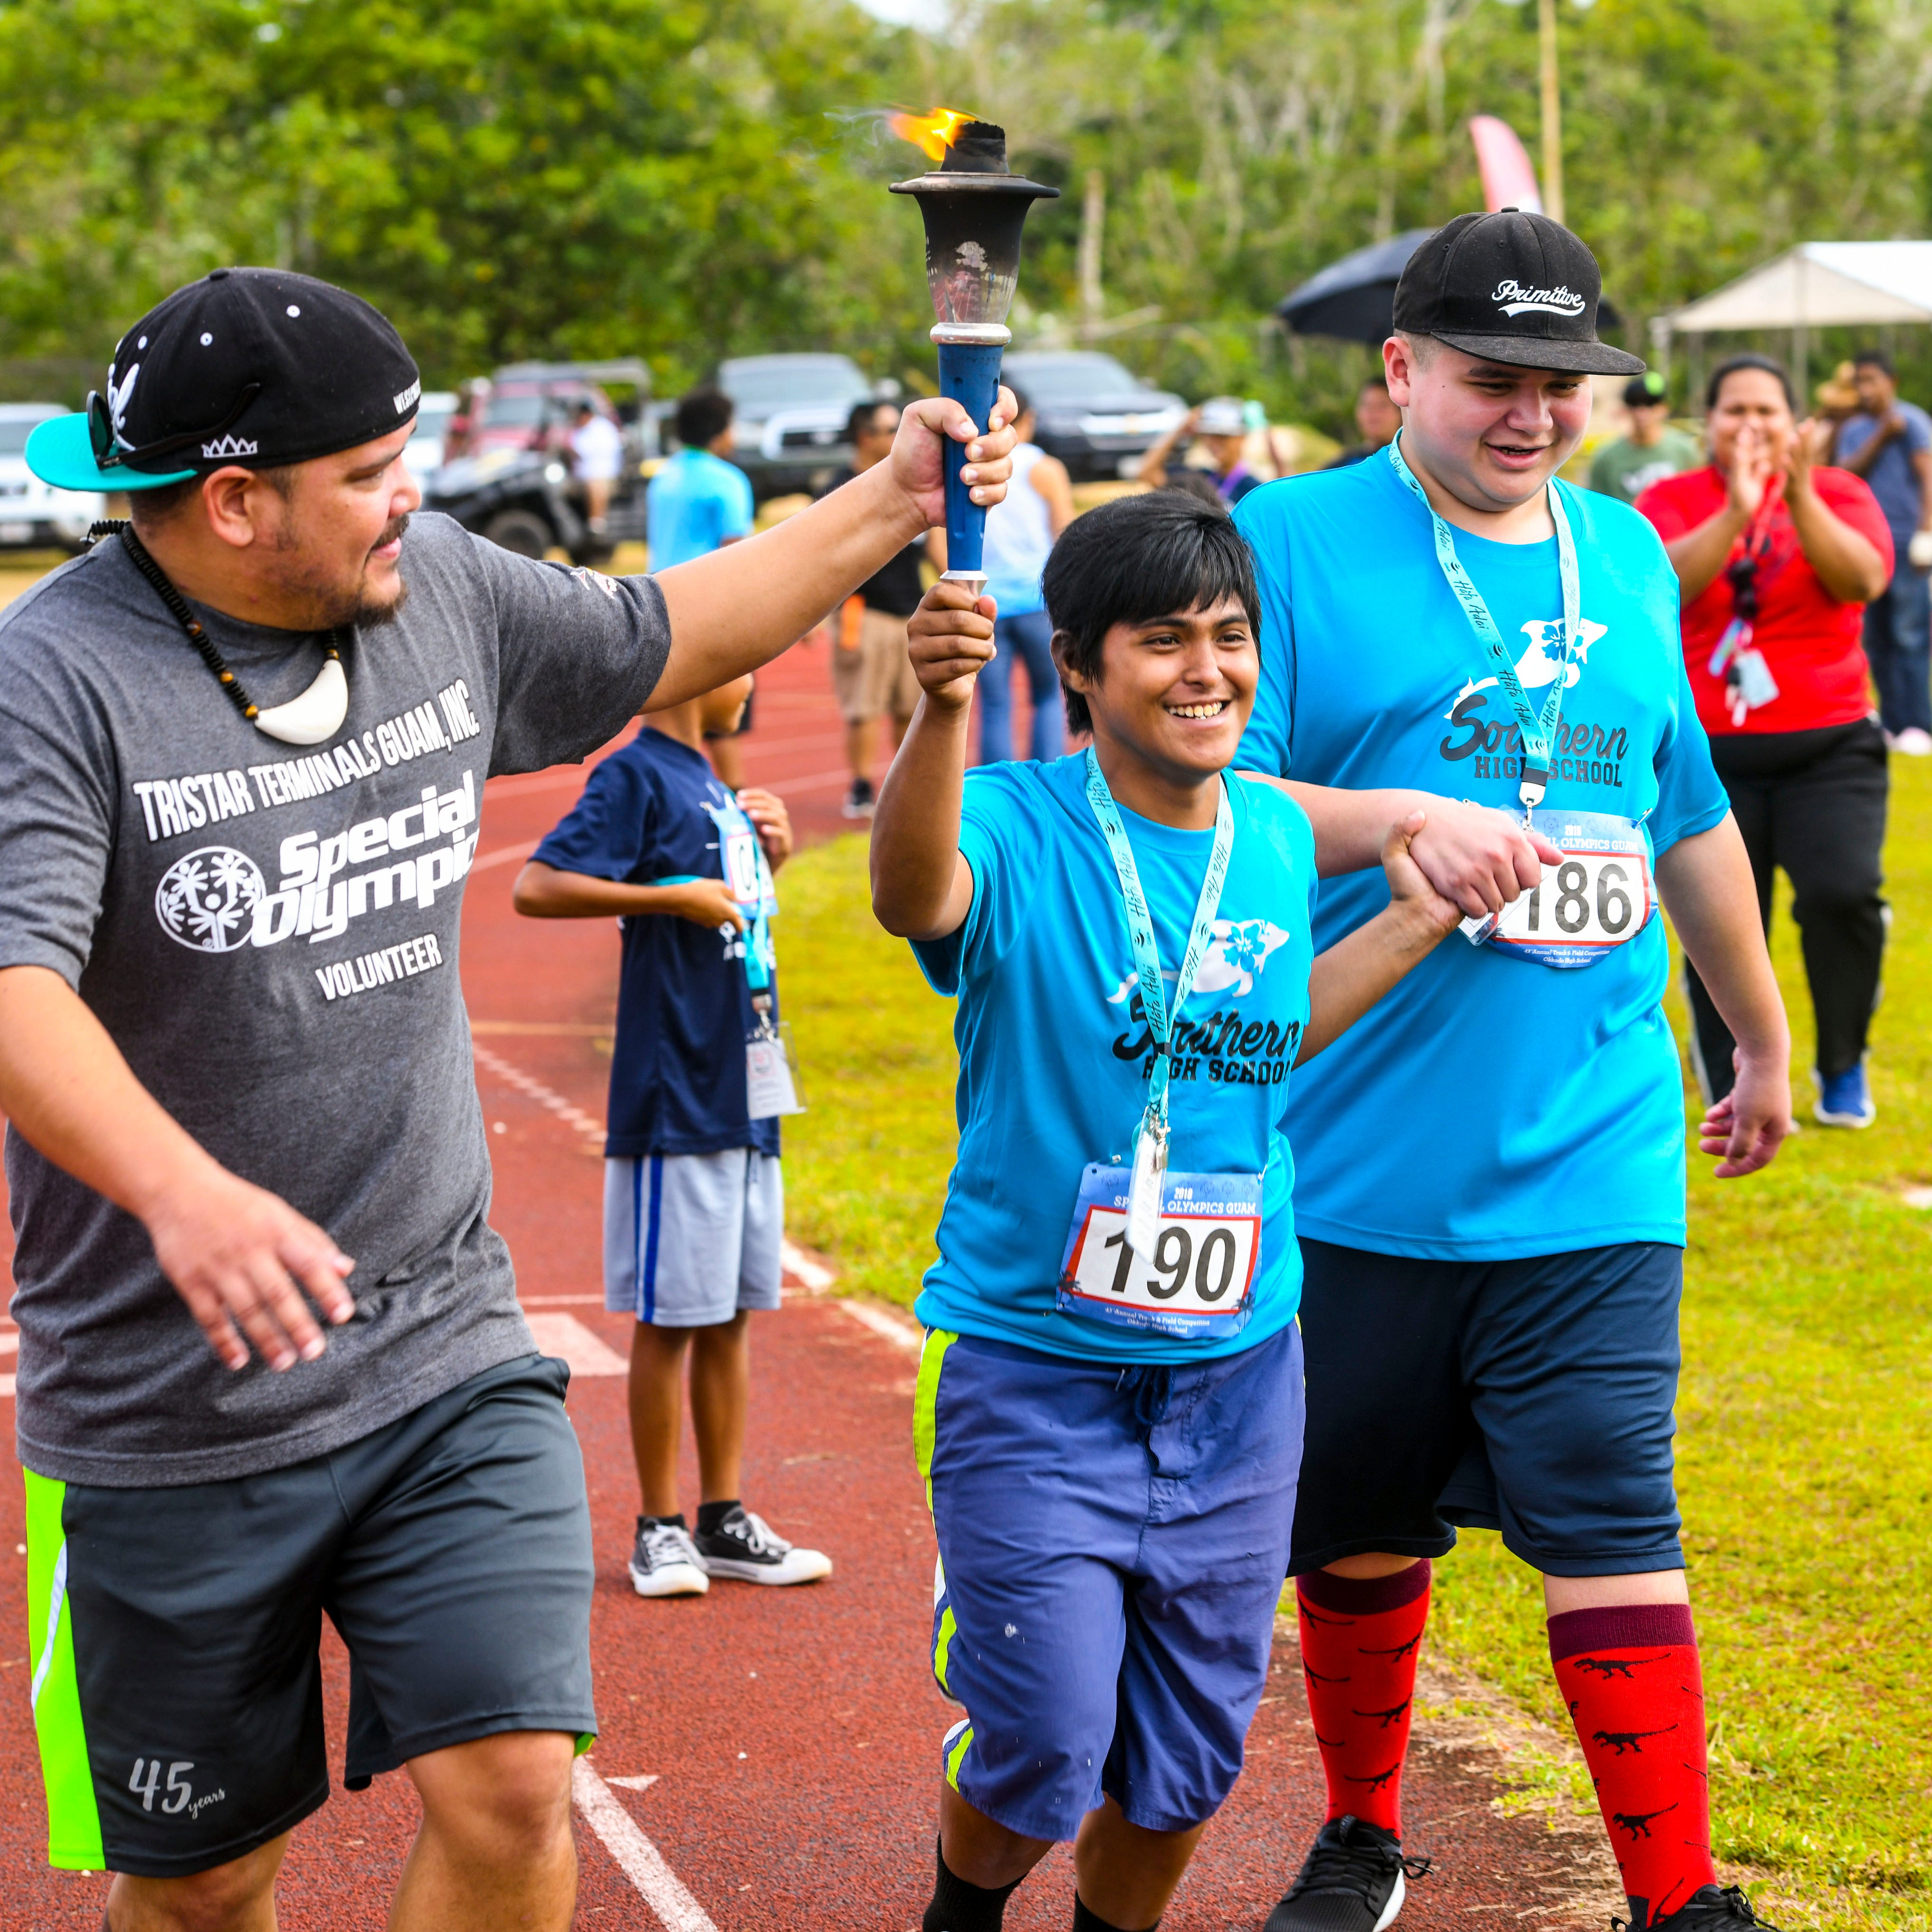 Special Olympics athletes have their day on the track